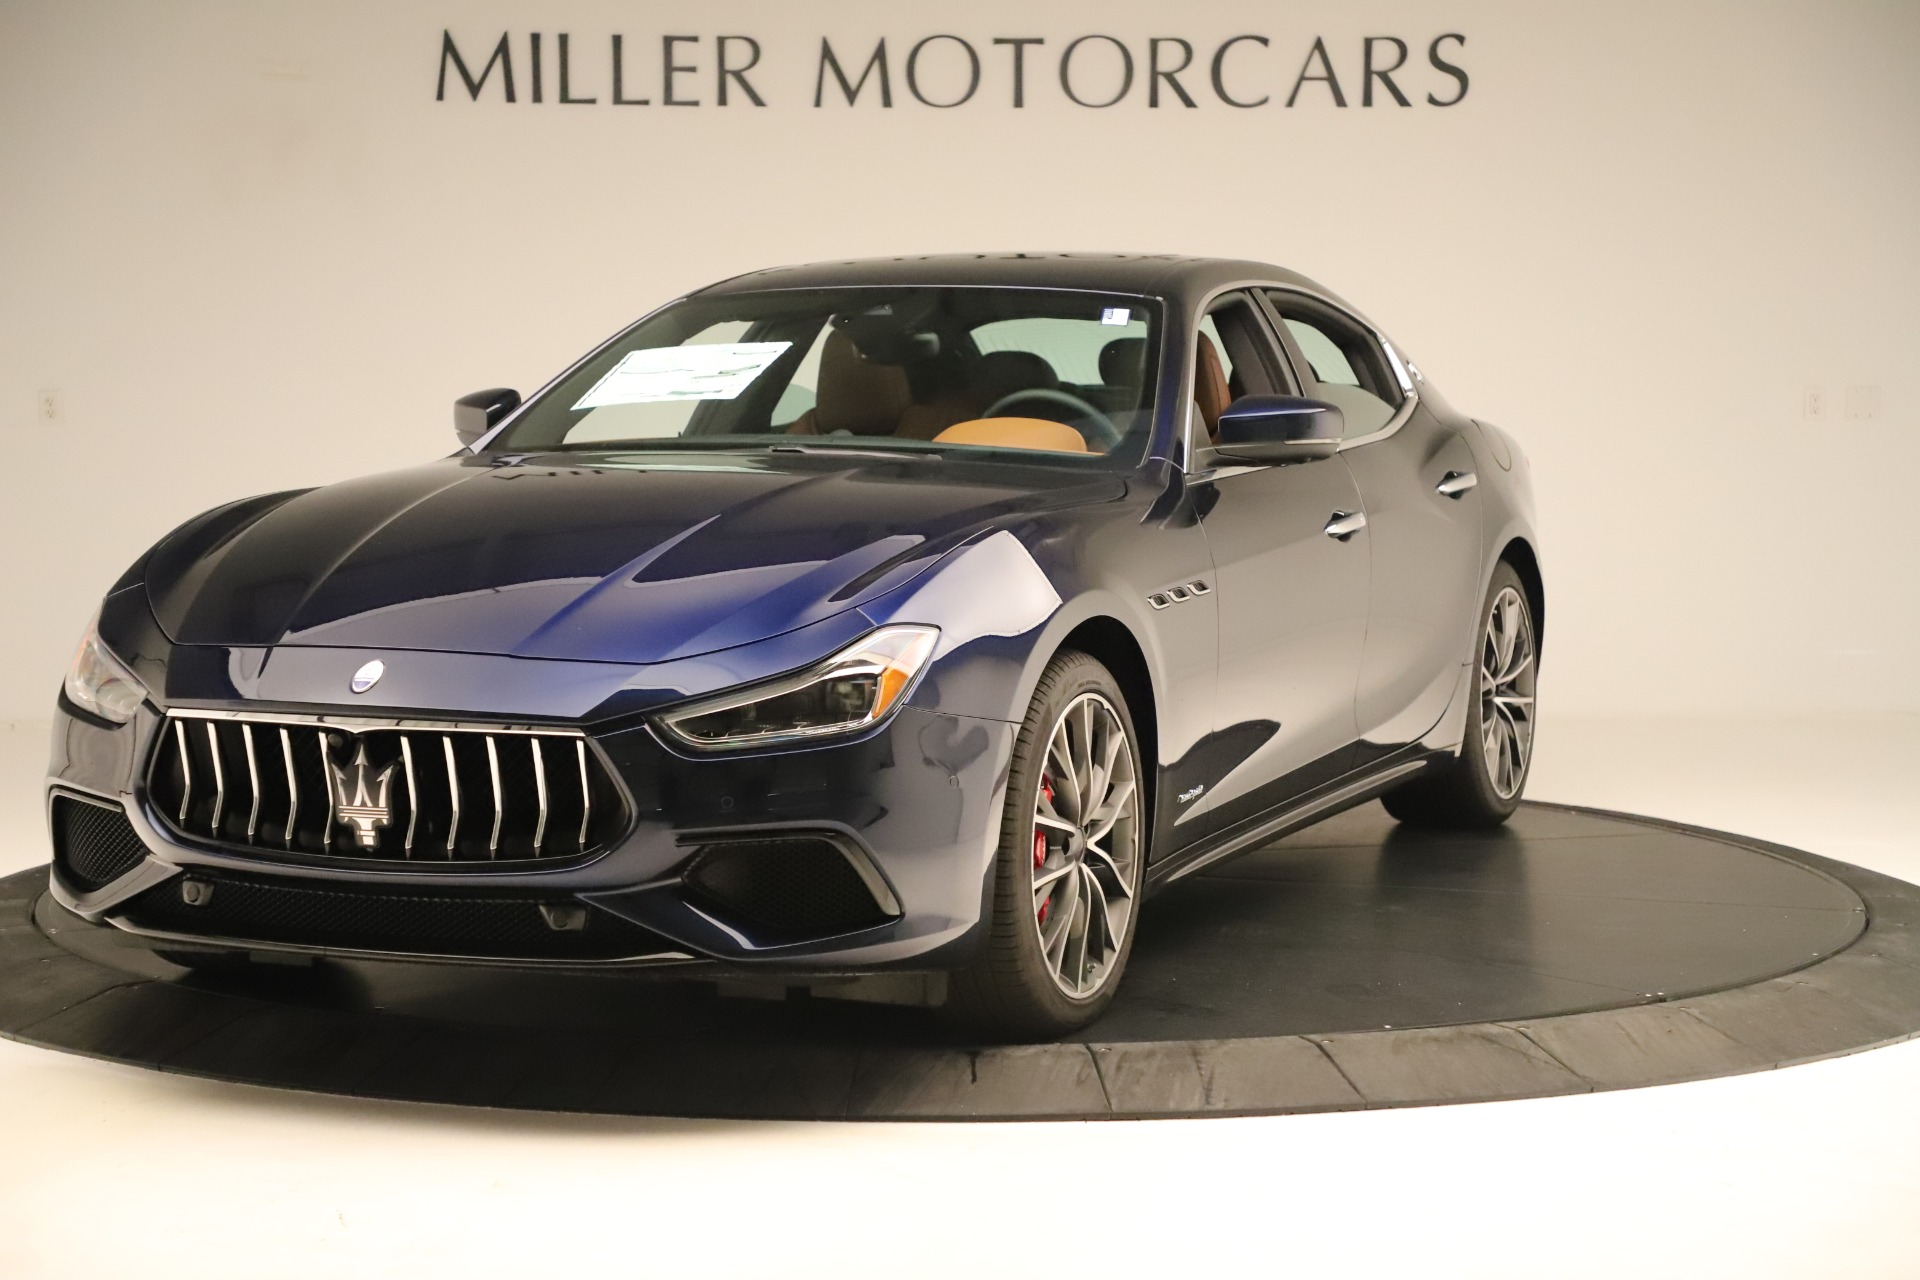 New 2019 Maserati Ghibli S Q4 GranSport For Sale In Westport, CT 2914_main